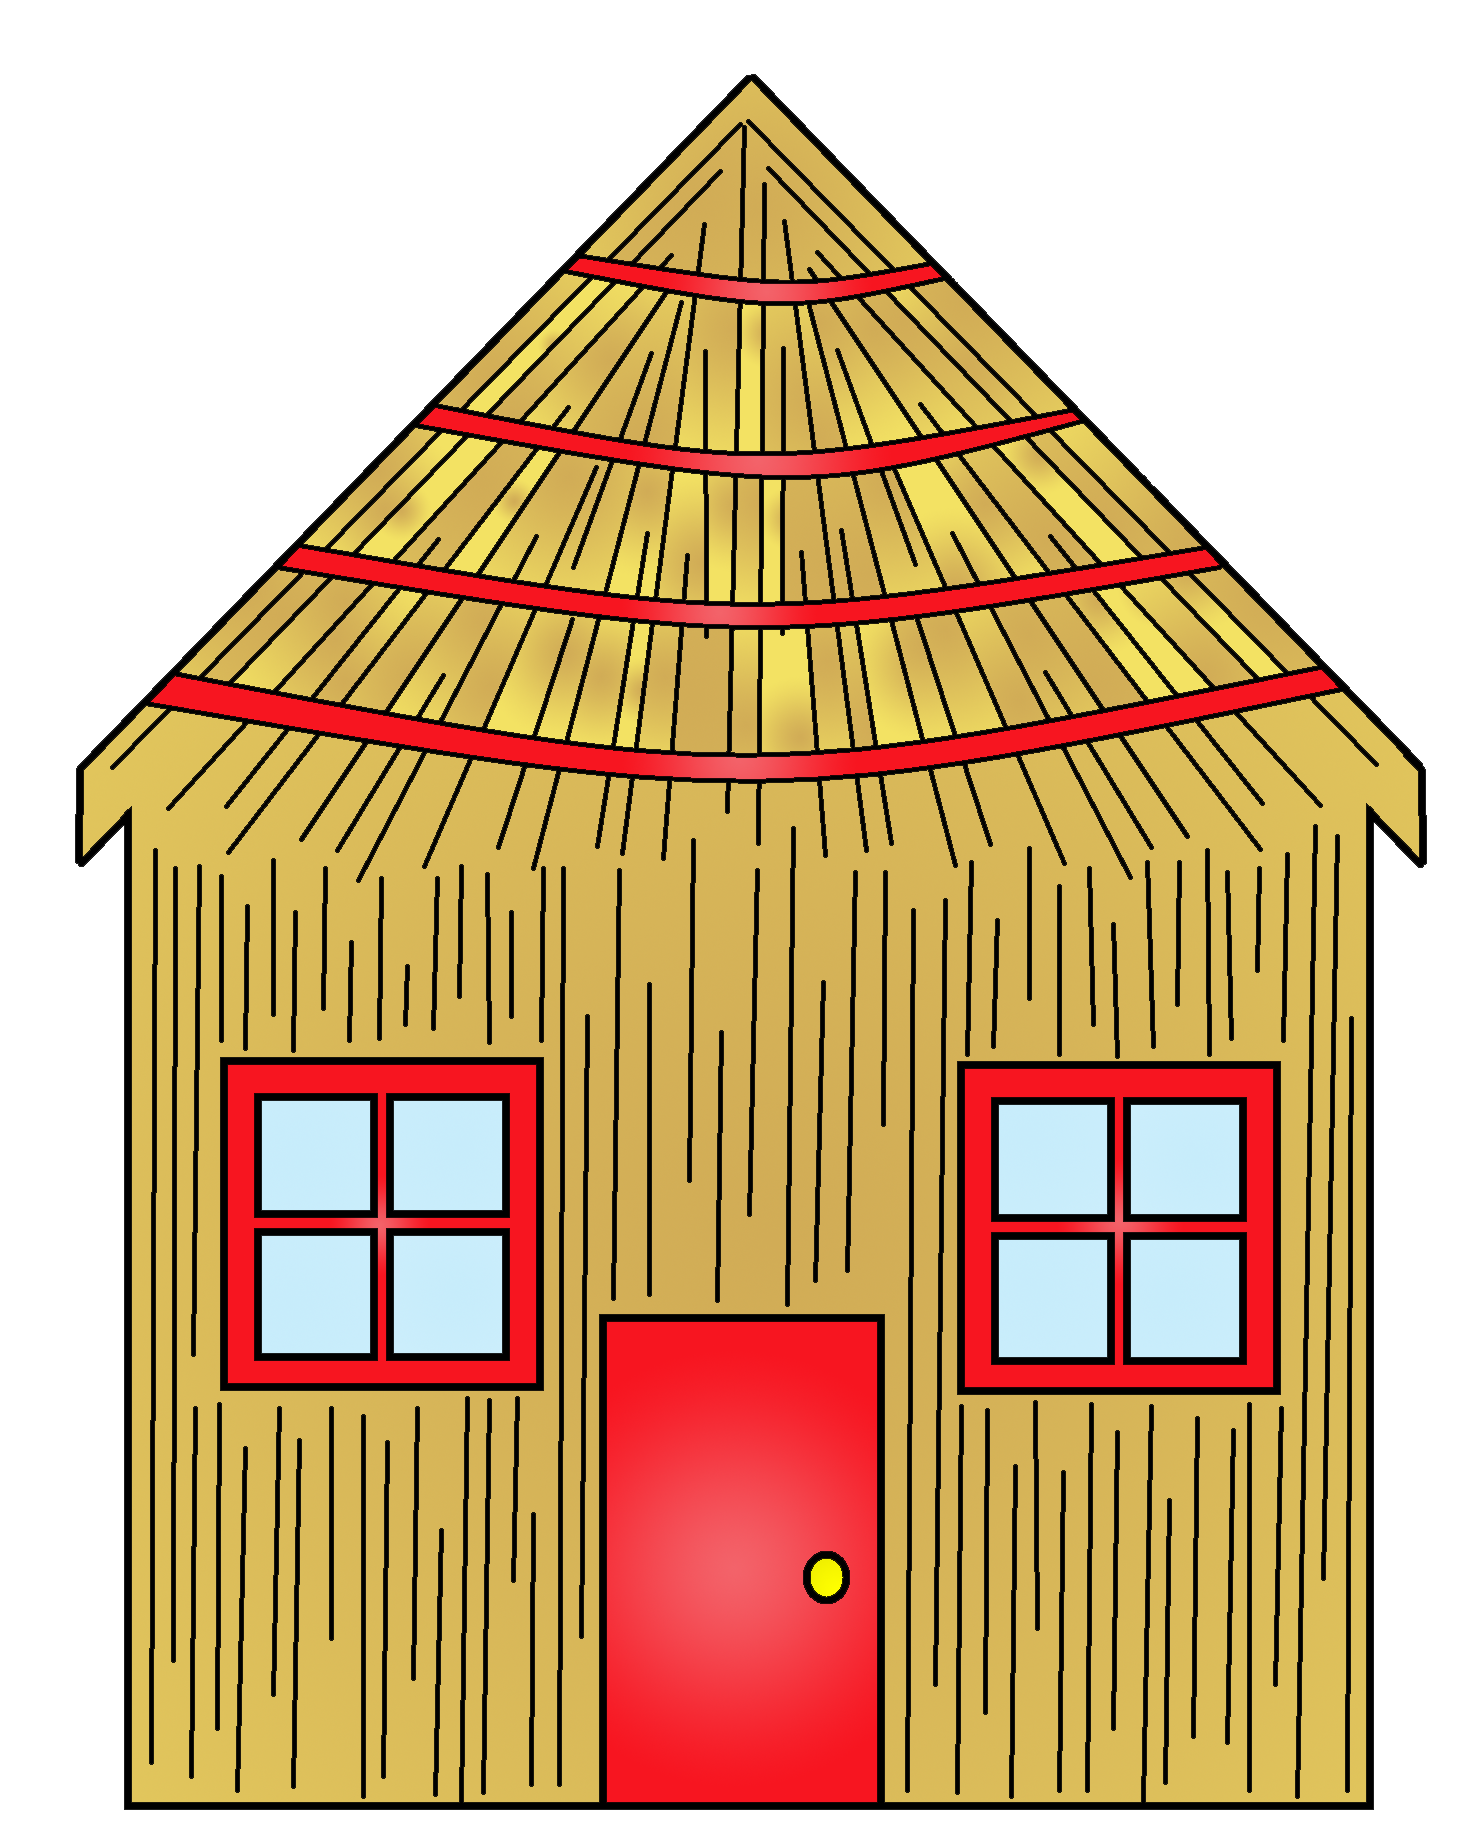 Free Straw House Cliparts, Download Free Clip Art, Free Clip.